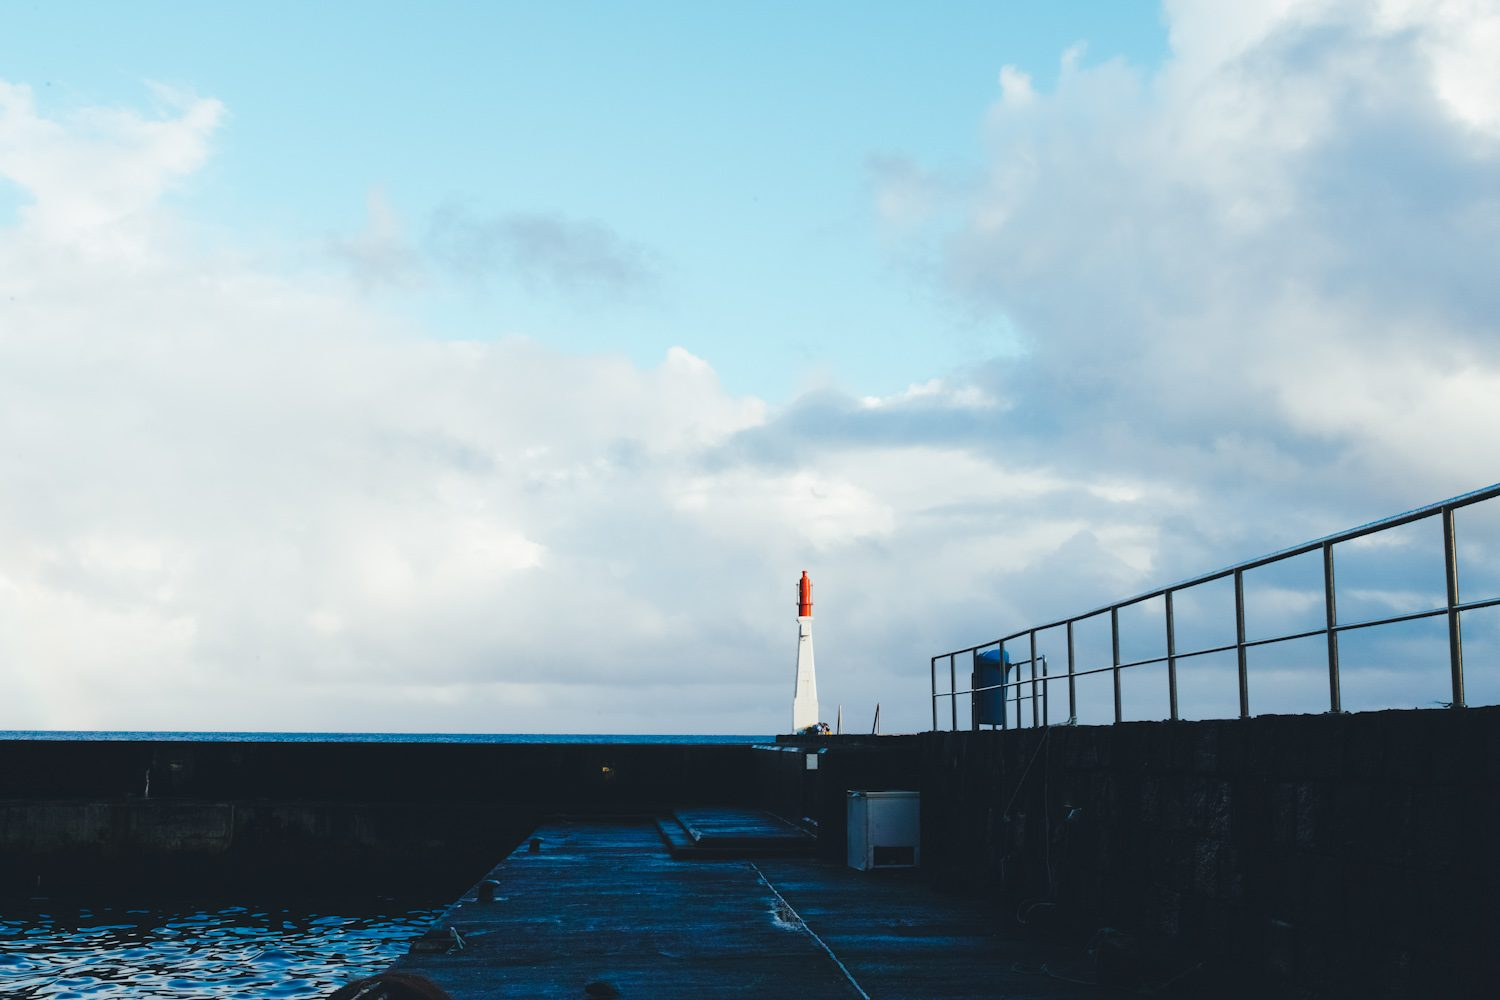 panorama_landscapes_azores_thevoyageur-5